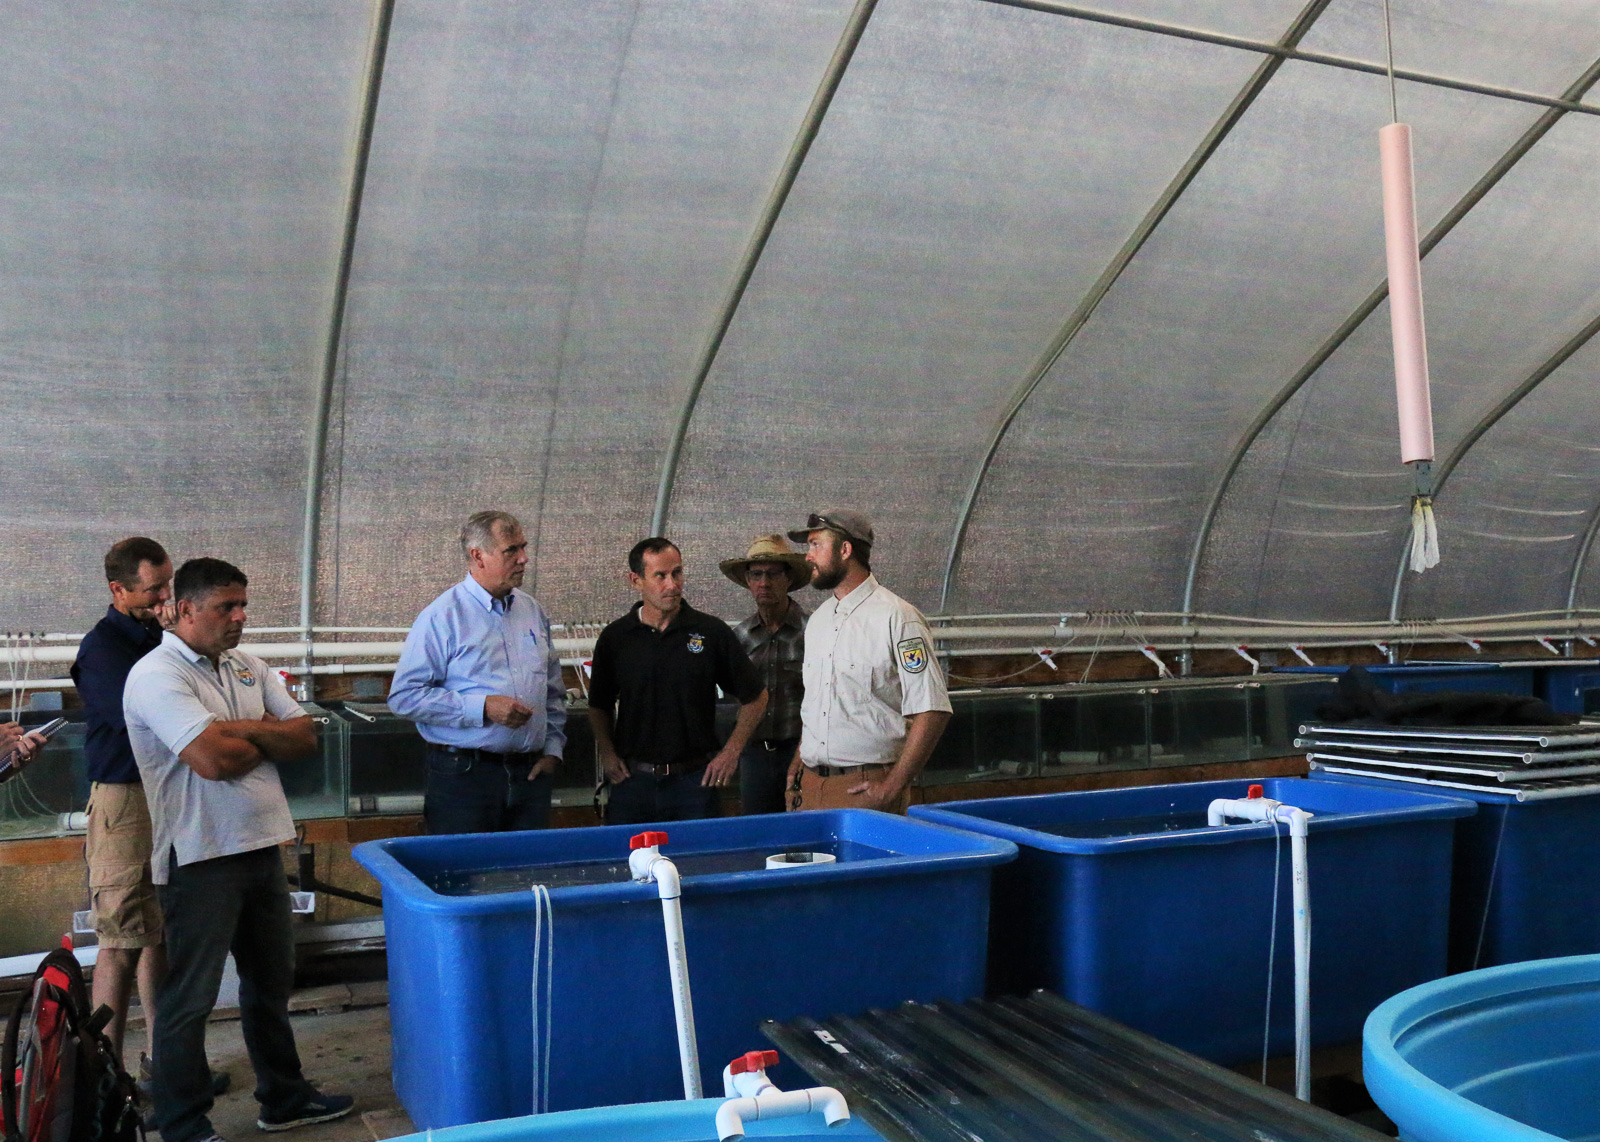 Merkley tours the Lost River and Shortnose Suckerfish rearing facility at Gone Fishing. August 12, 2019 (Image: Sara Hottman)